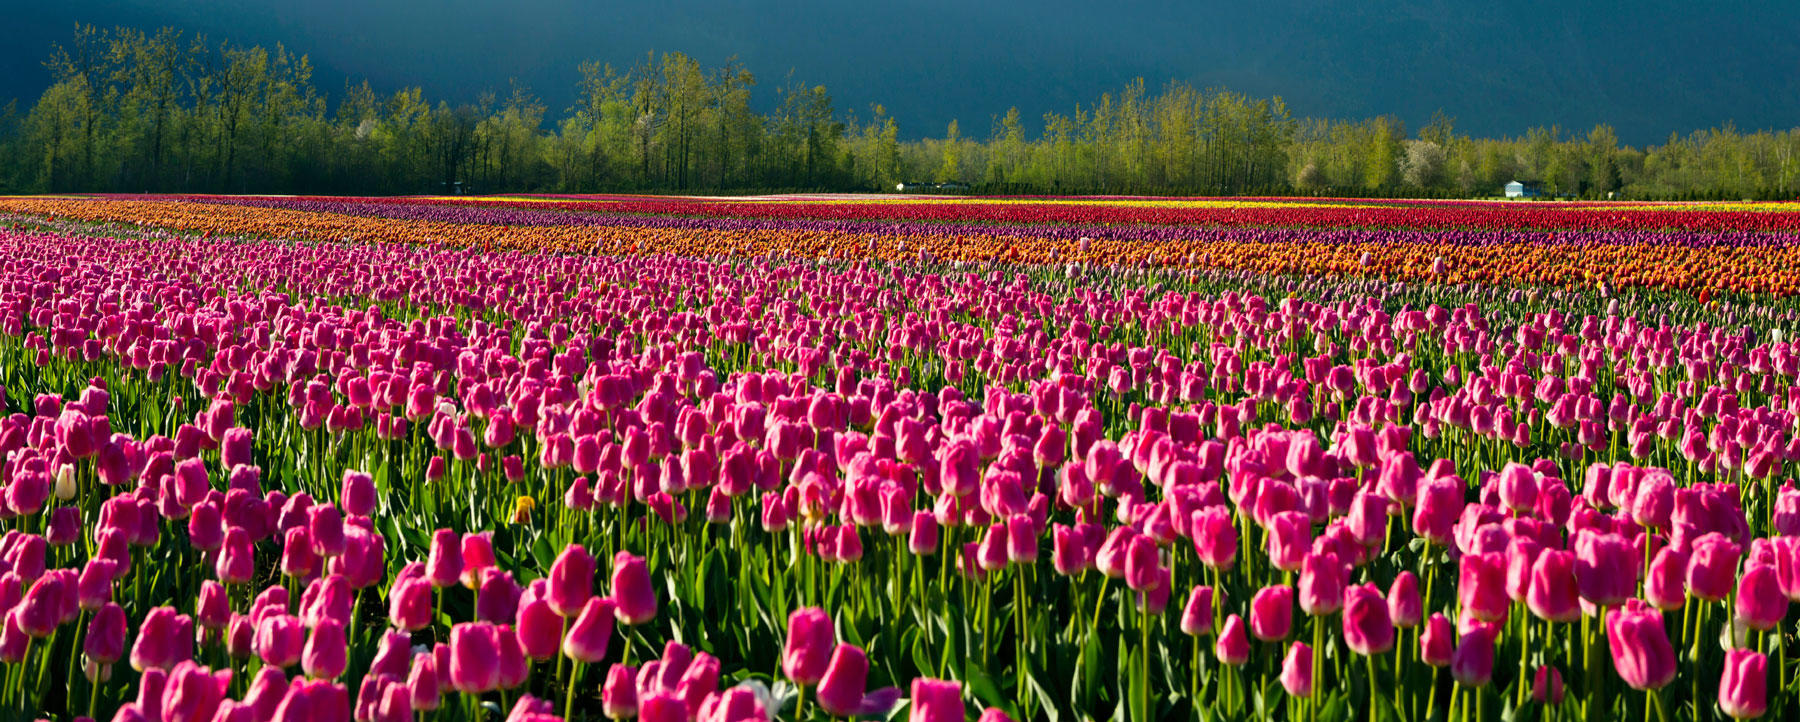 Cultivated Tulip Field in Fraser Valley, British Columbia